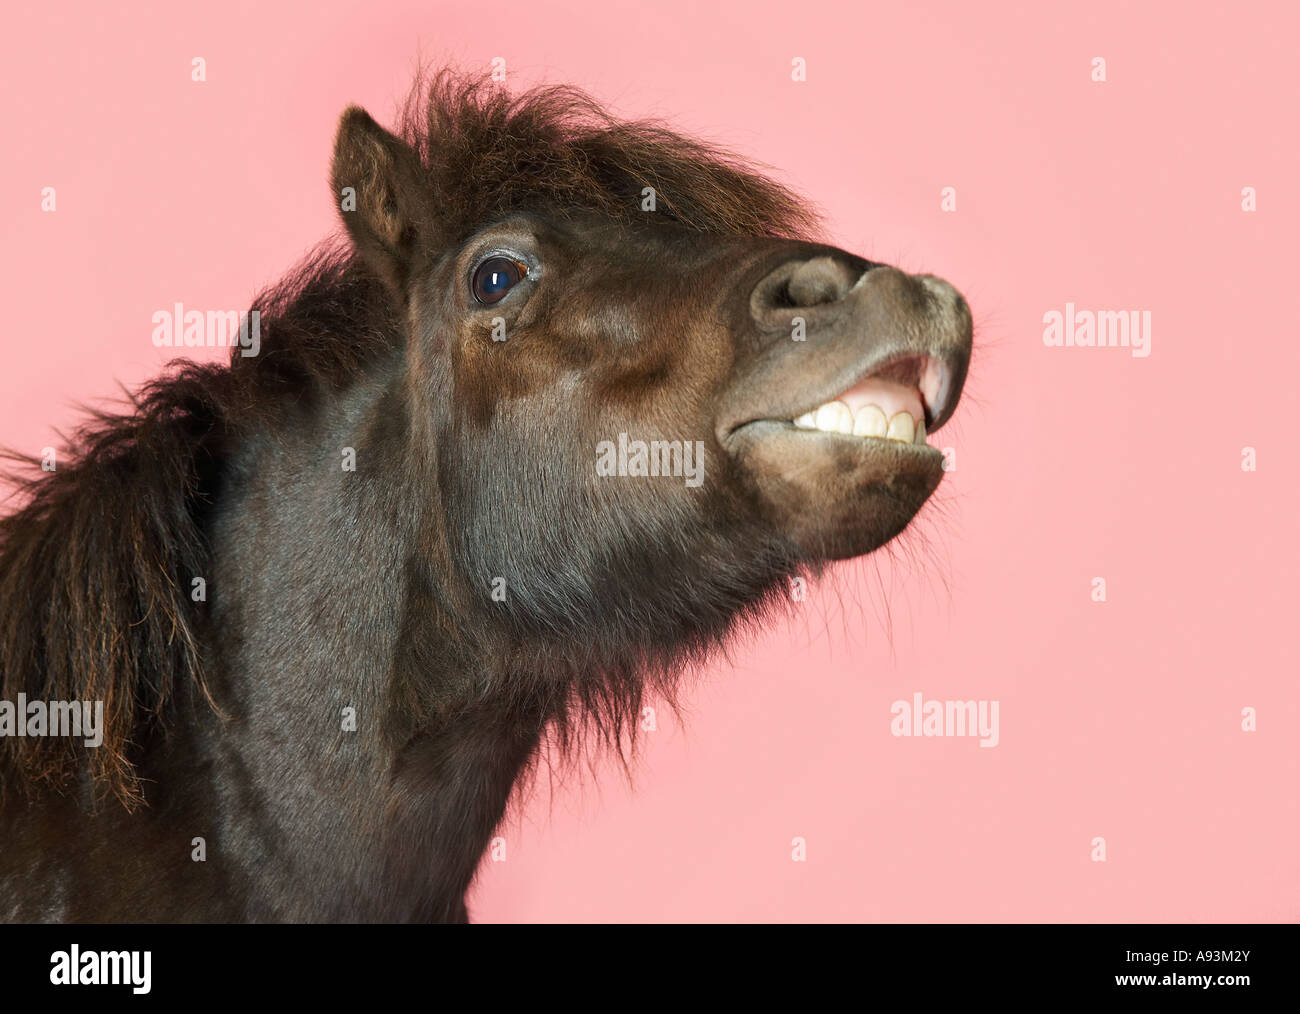 Snarling horse against pink background, close-up head - Stock Image